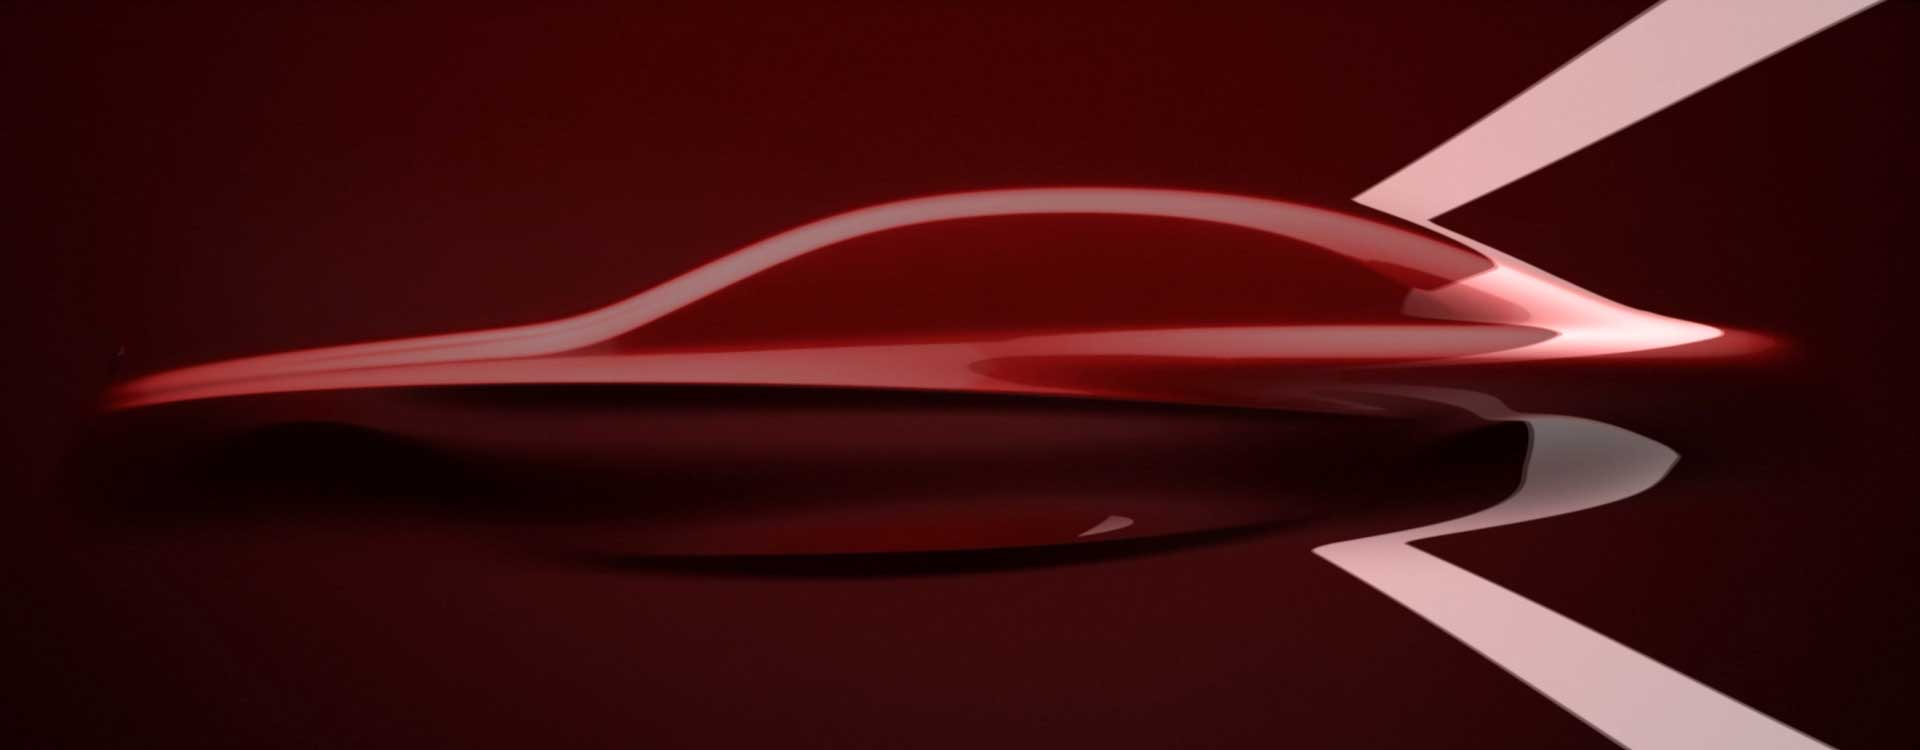 Silhouette in red. Still from Mercedes-Benz Commercial.